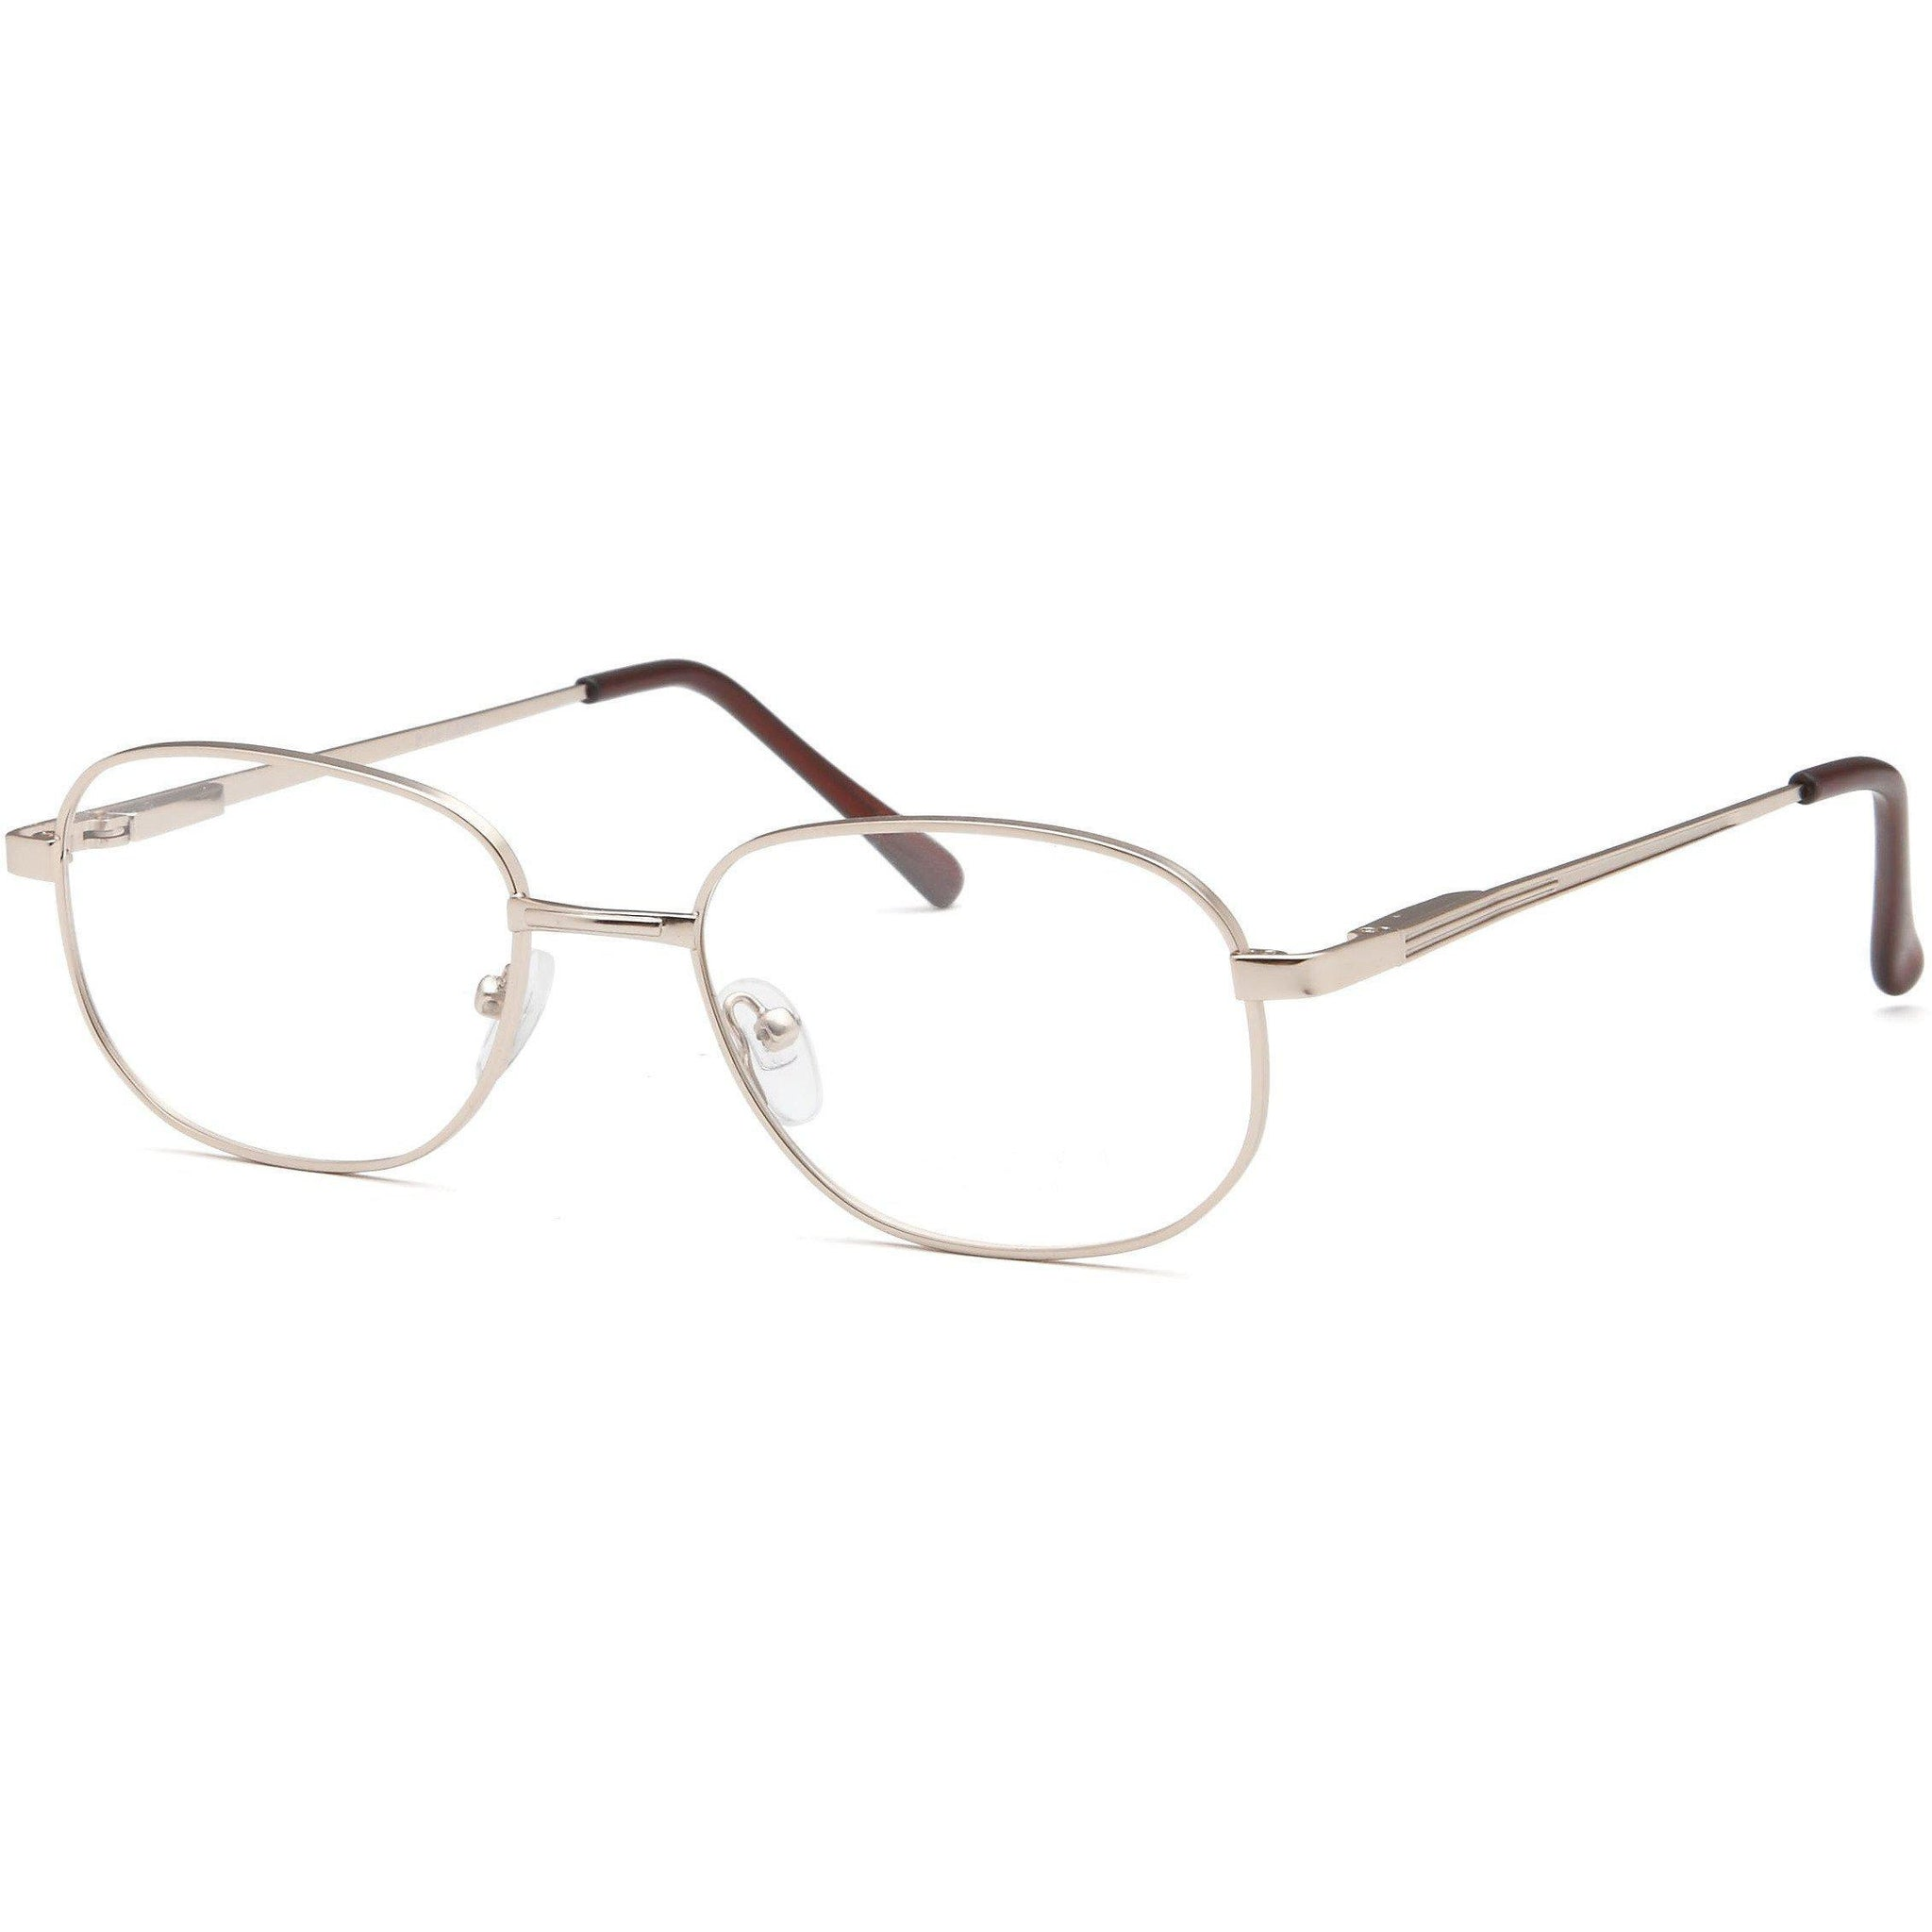 Appletree Prescription Glasses PT 48 Eyeglasses Frame